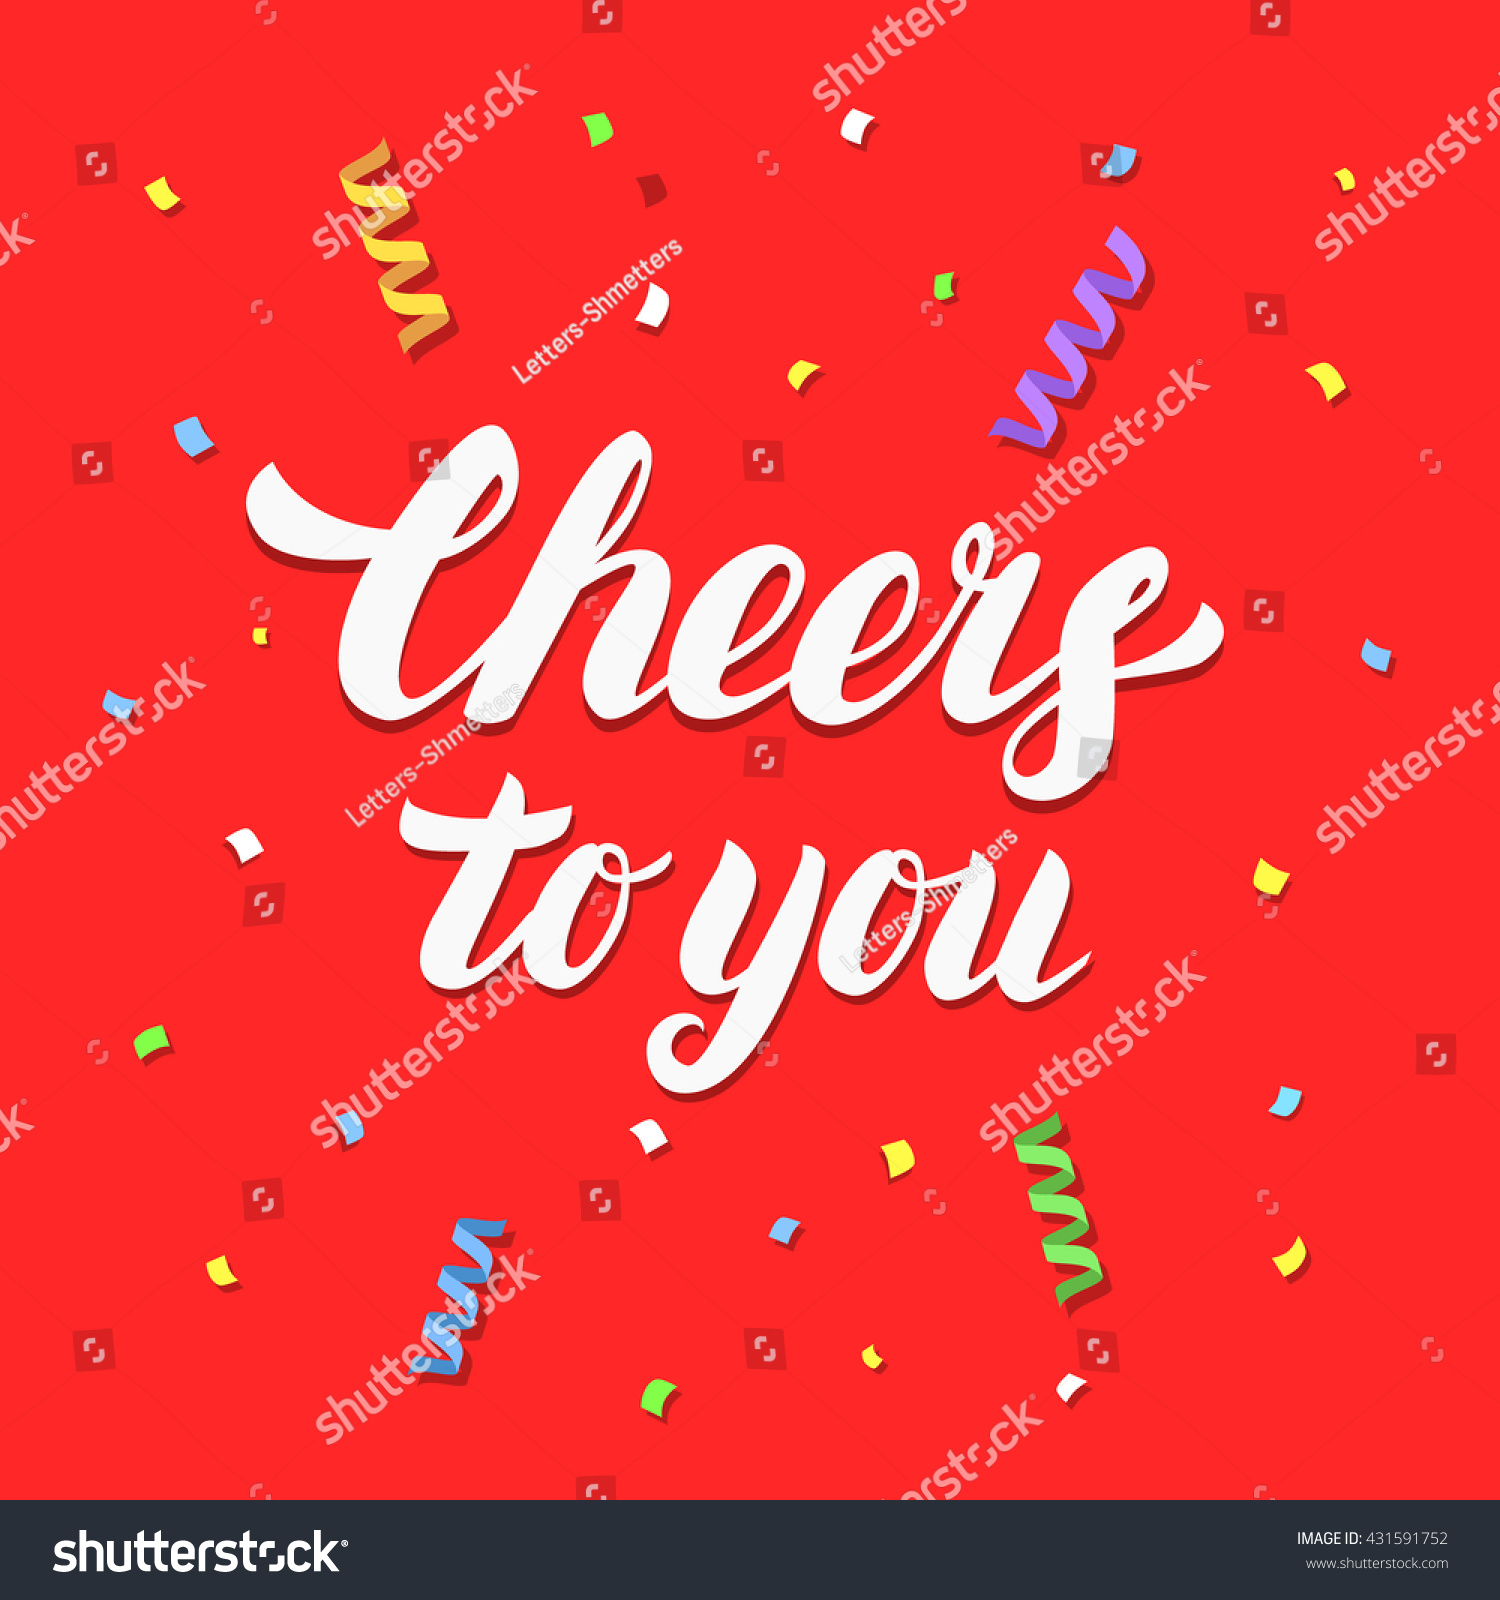 Cheers to you hand written lettering on festive red background with confetti and paper streamers for